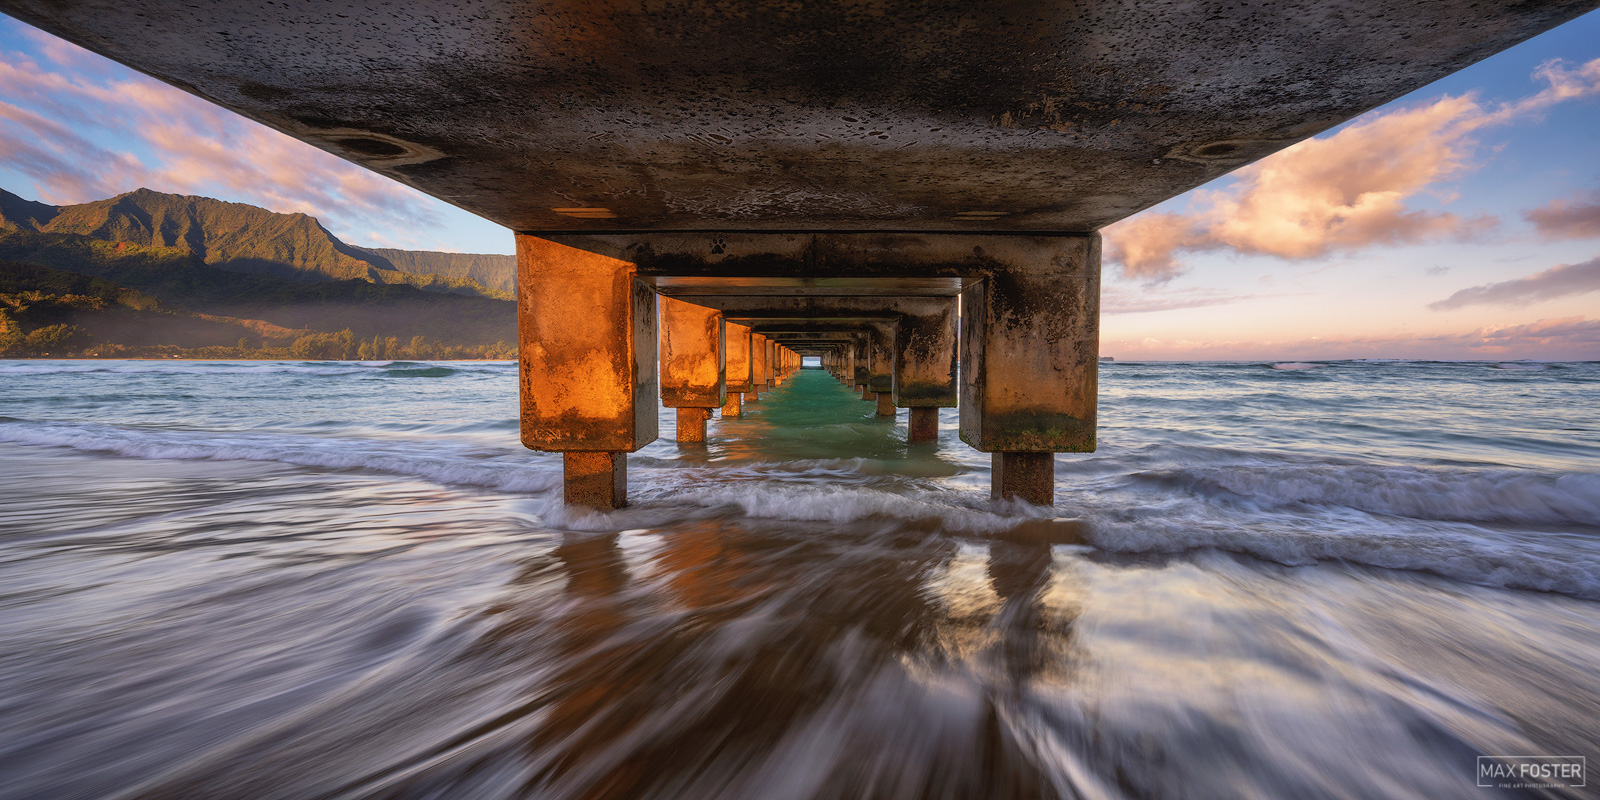 Fine Art Limited Edition of 50 The panoramic or pano version of Understudy, taken at Hanalei Pier in Kauai, Hawaii. Photo ©...